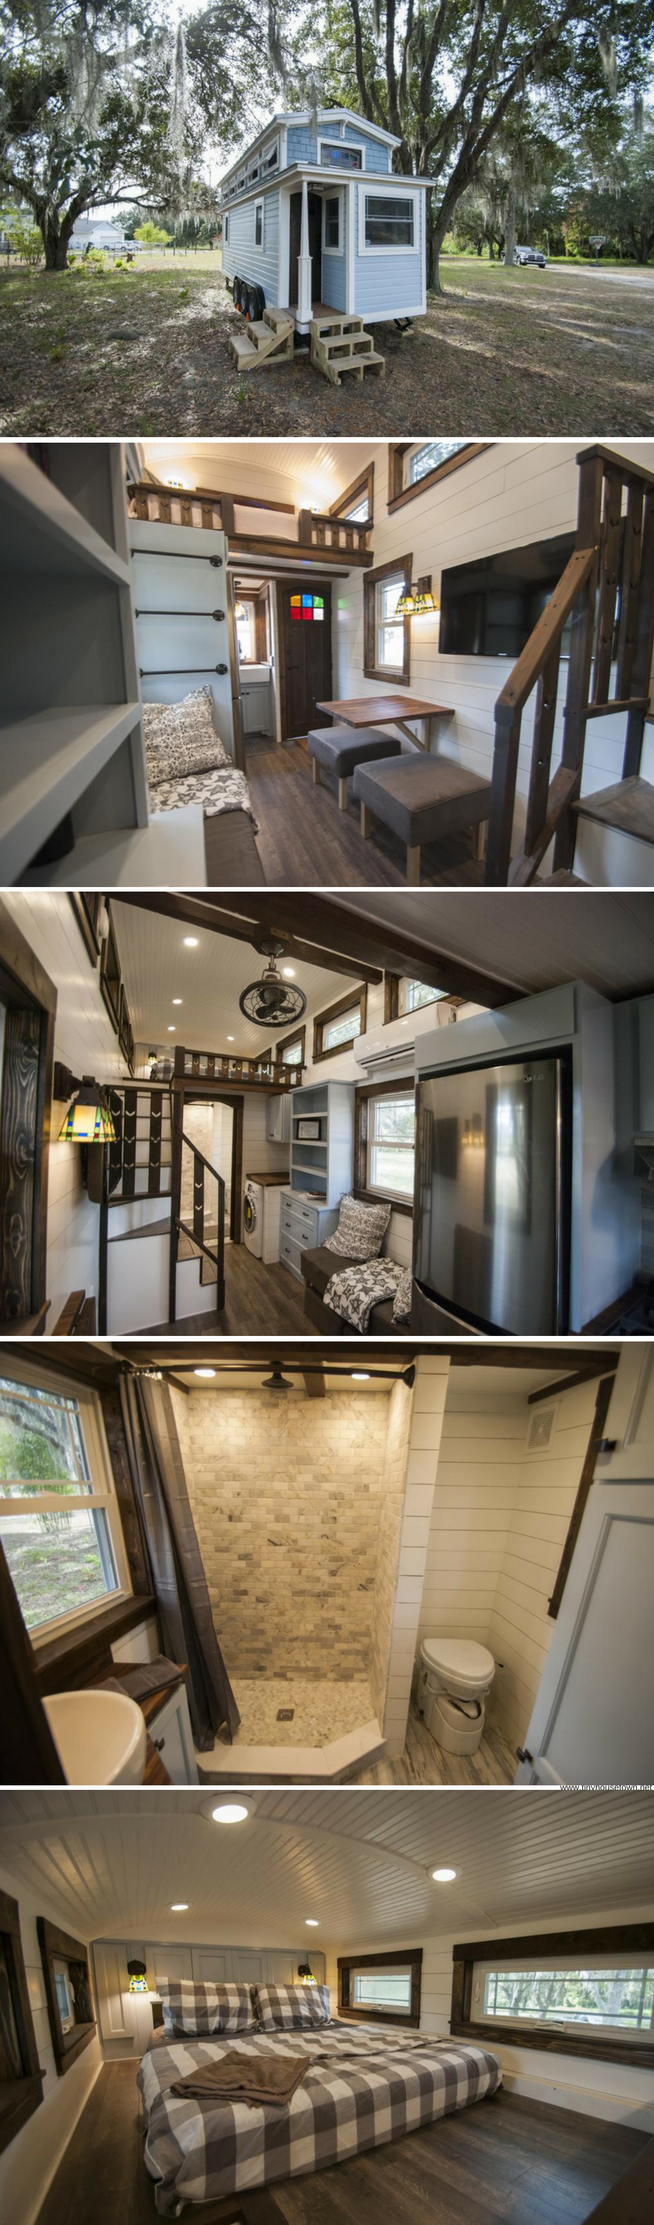 A stunning luxury tiny house for sale